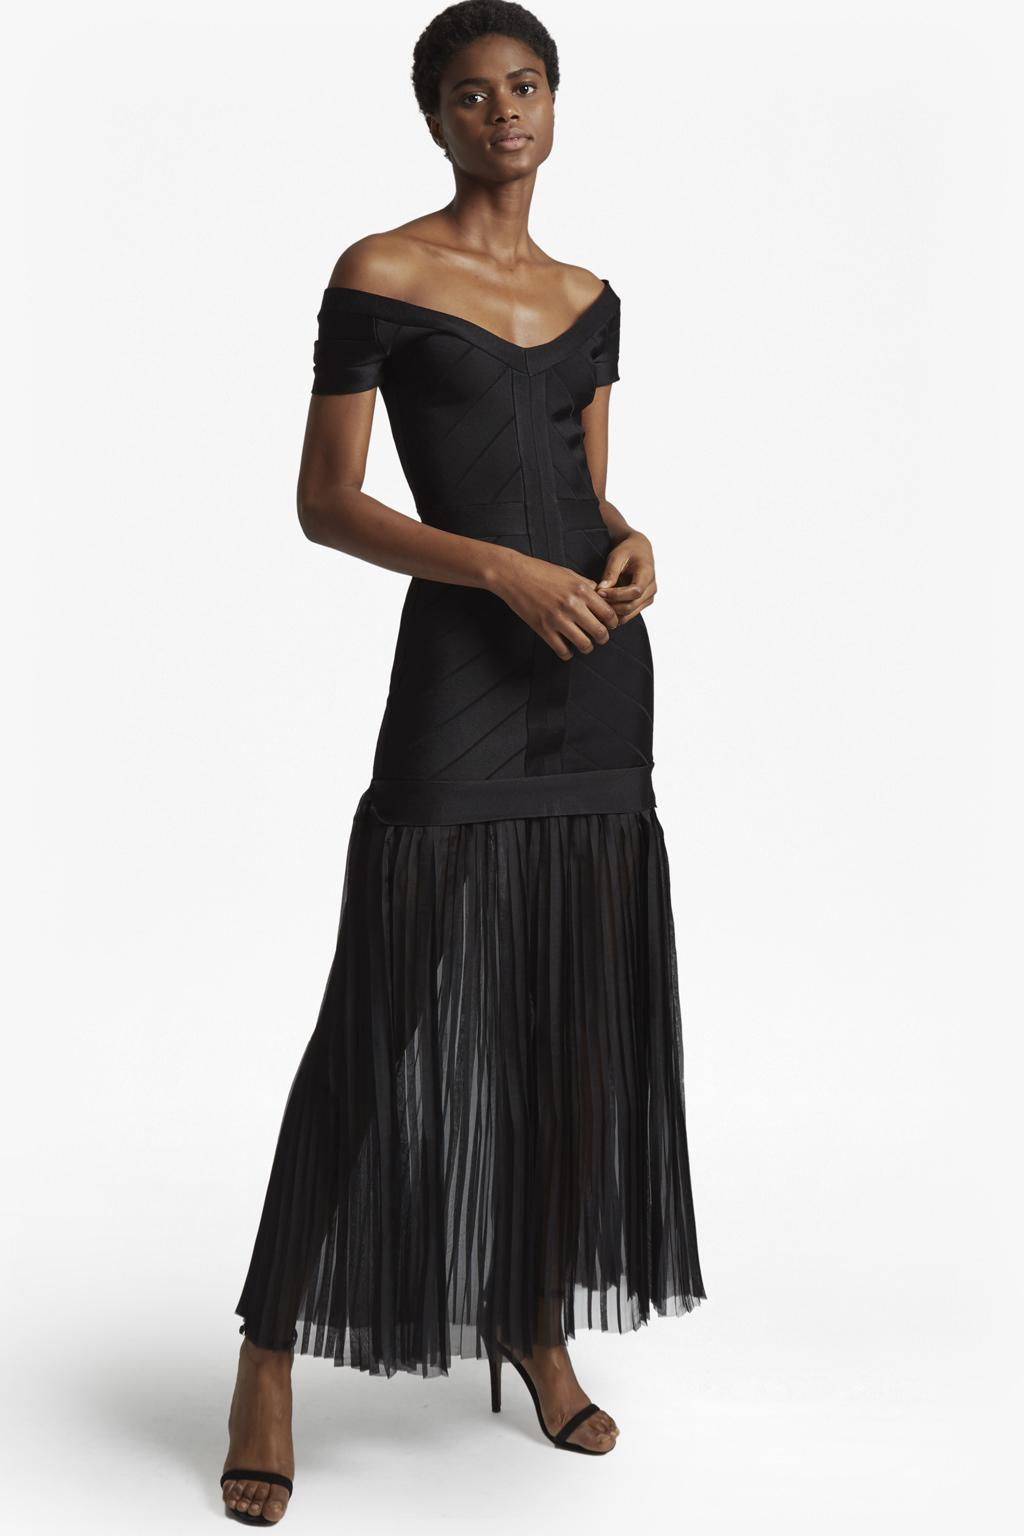 bcc86ca908d2d French Connection Rosa Spotlight Off-shoulder Maxi Dress in Black - Lyst